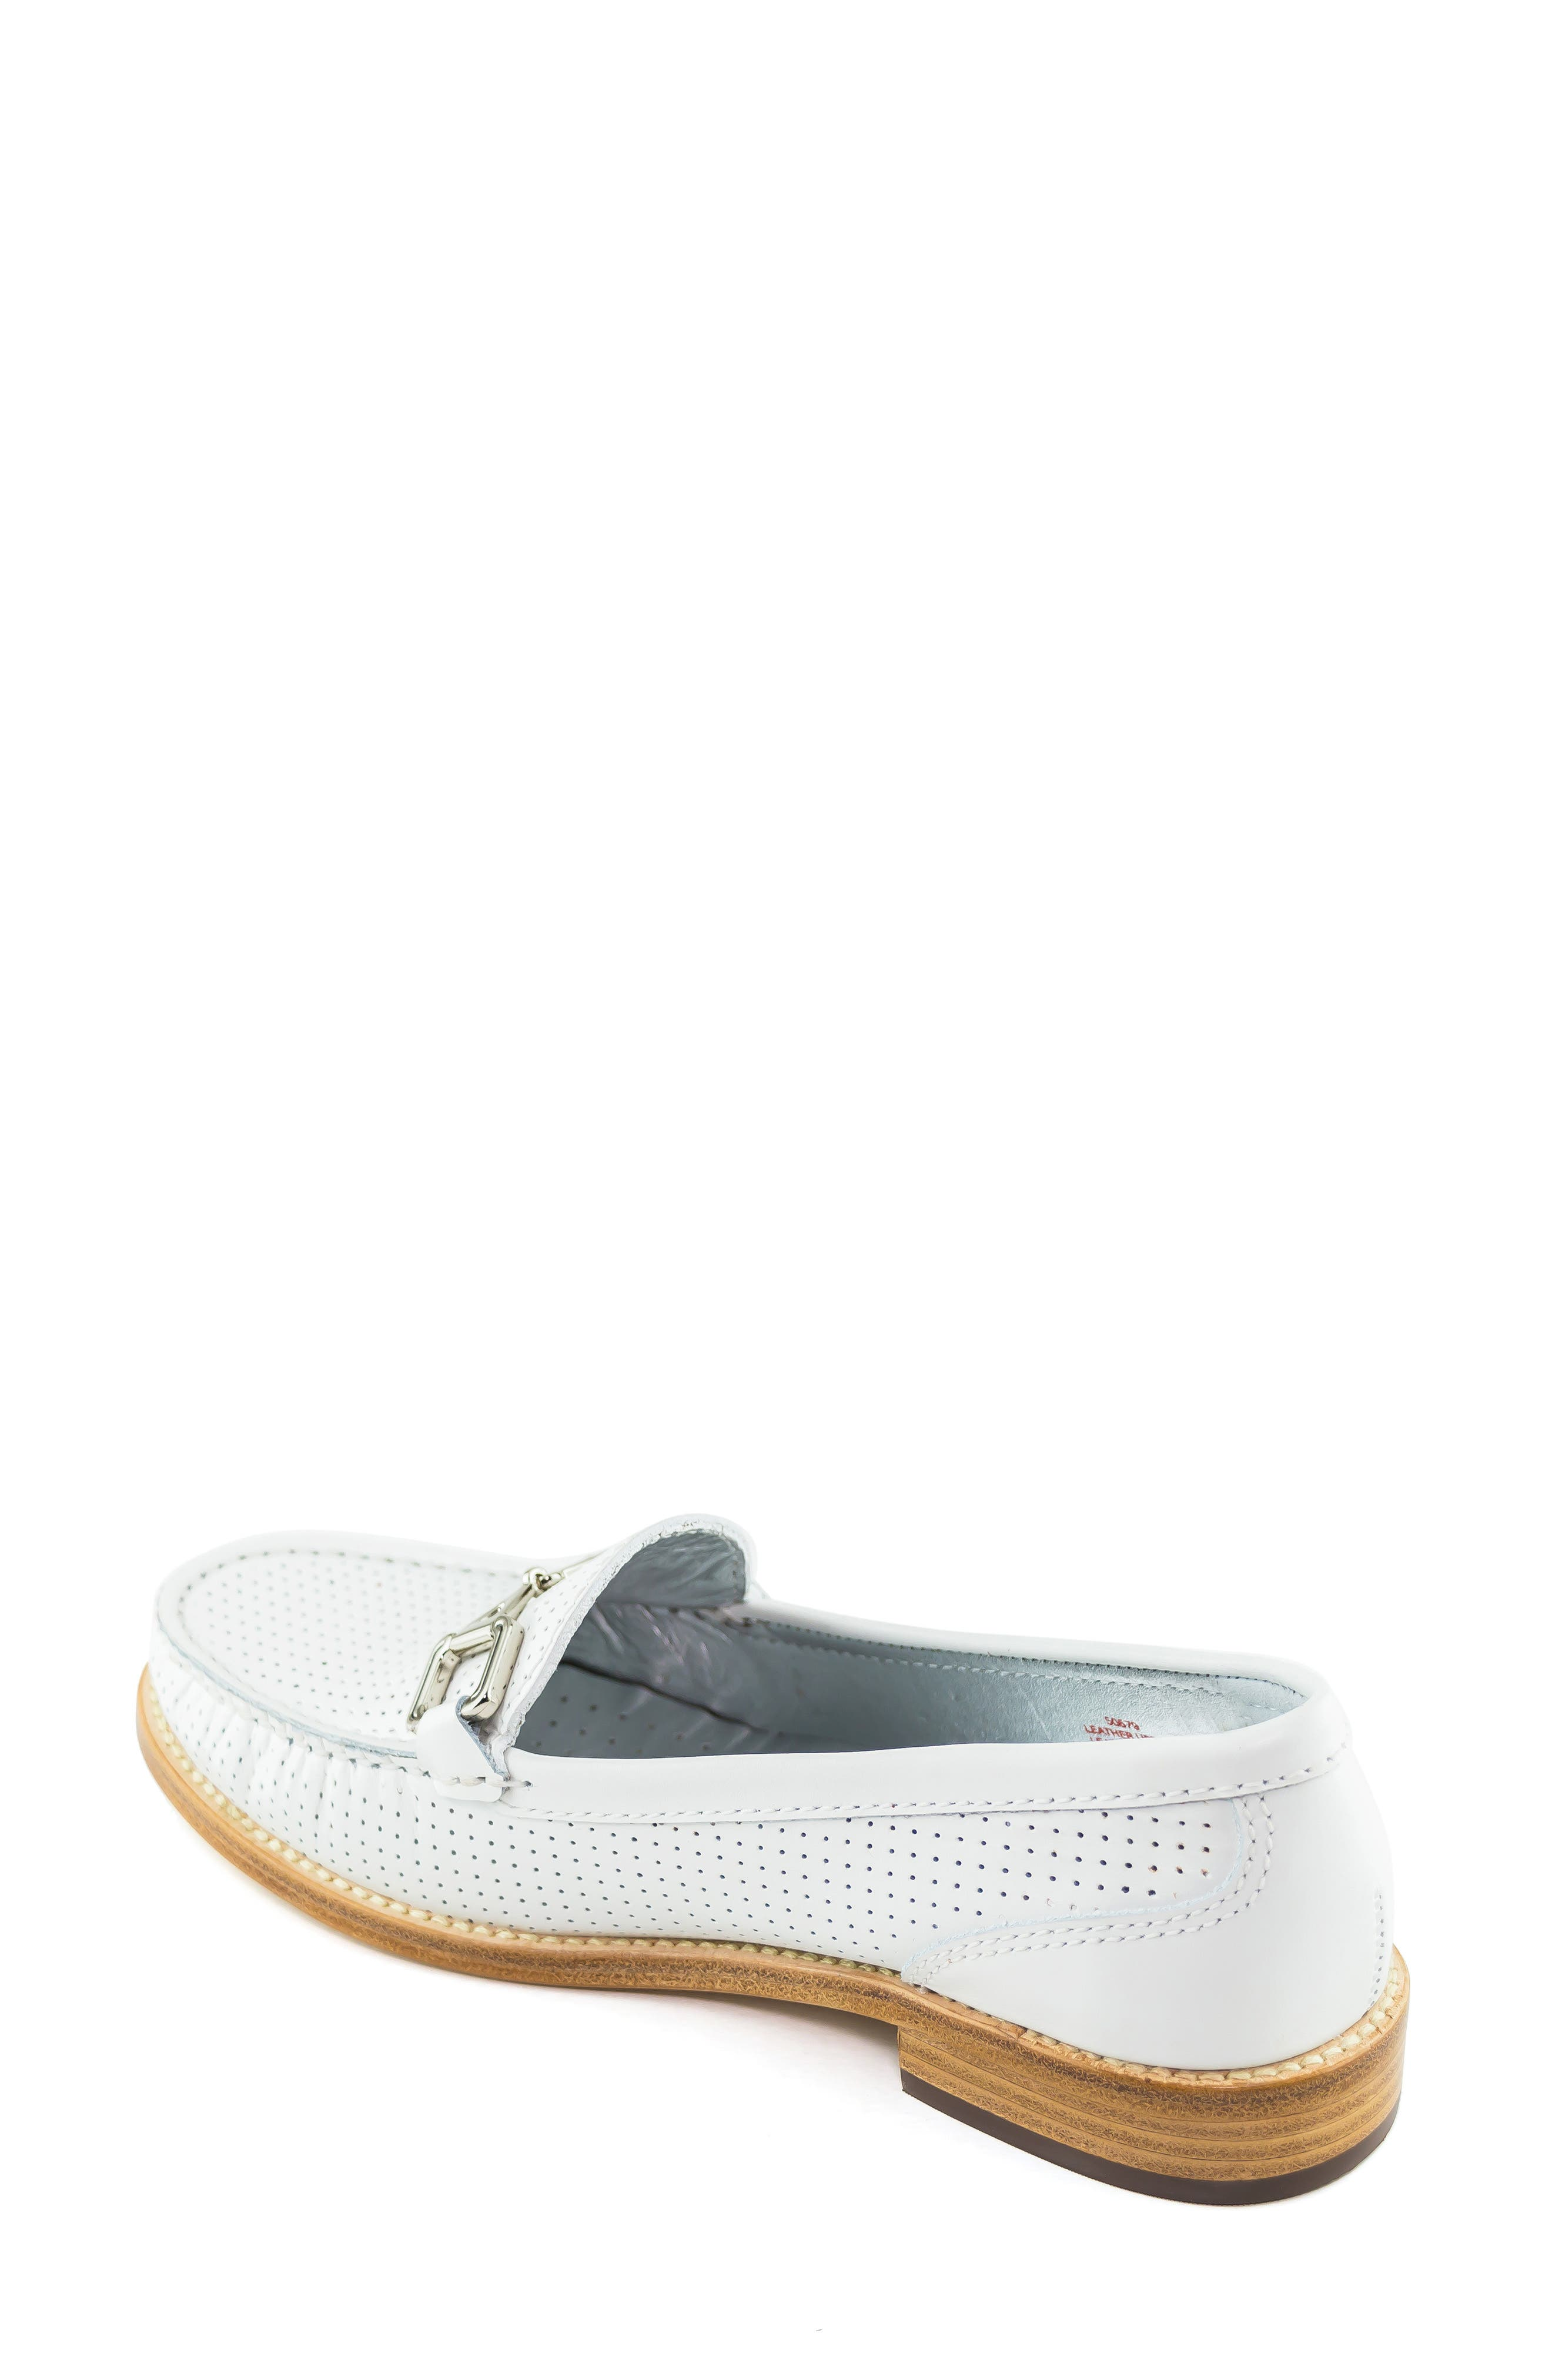 MARC JOSEPH NEW YORK, Park Ave Perforated Loafer, Alternate thumbnail 2, color, WHITE LEATHER